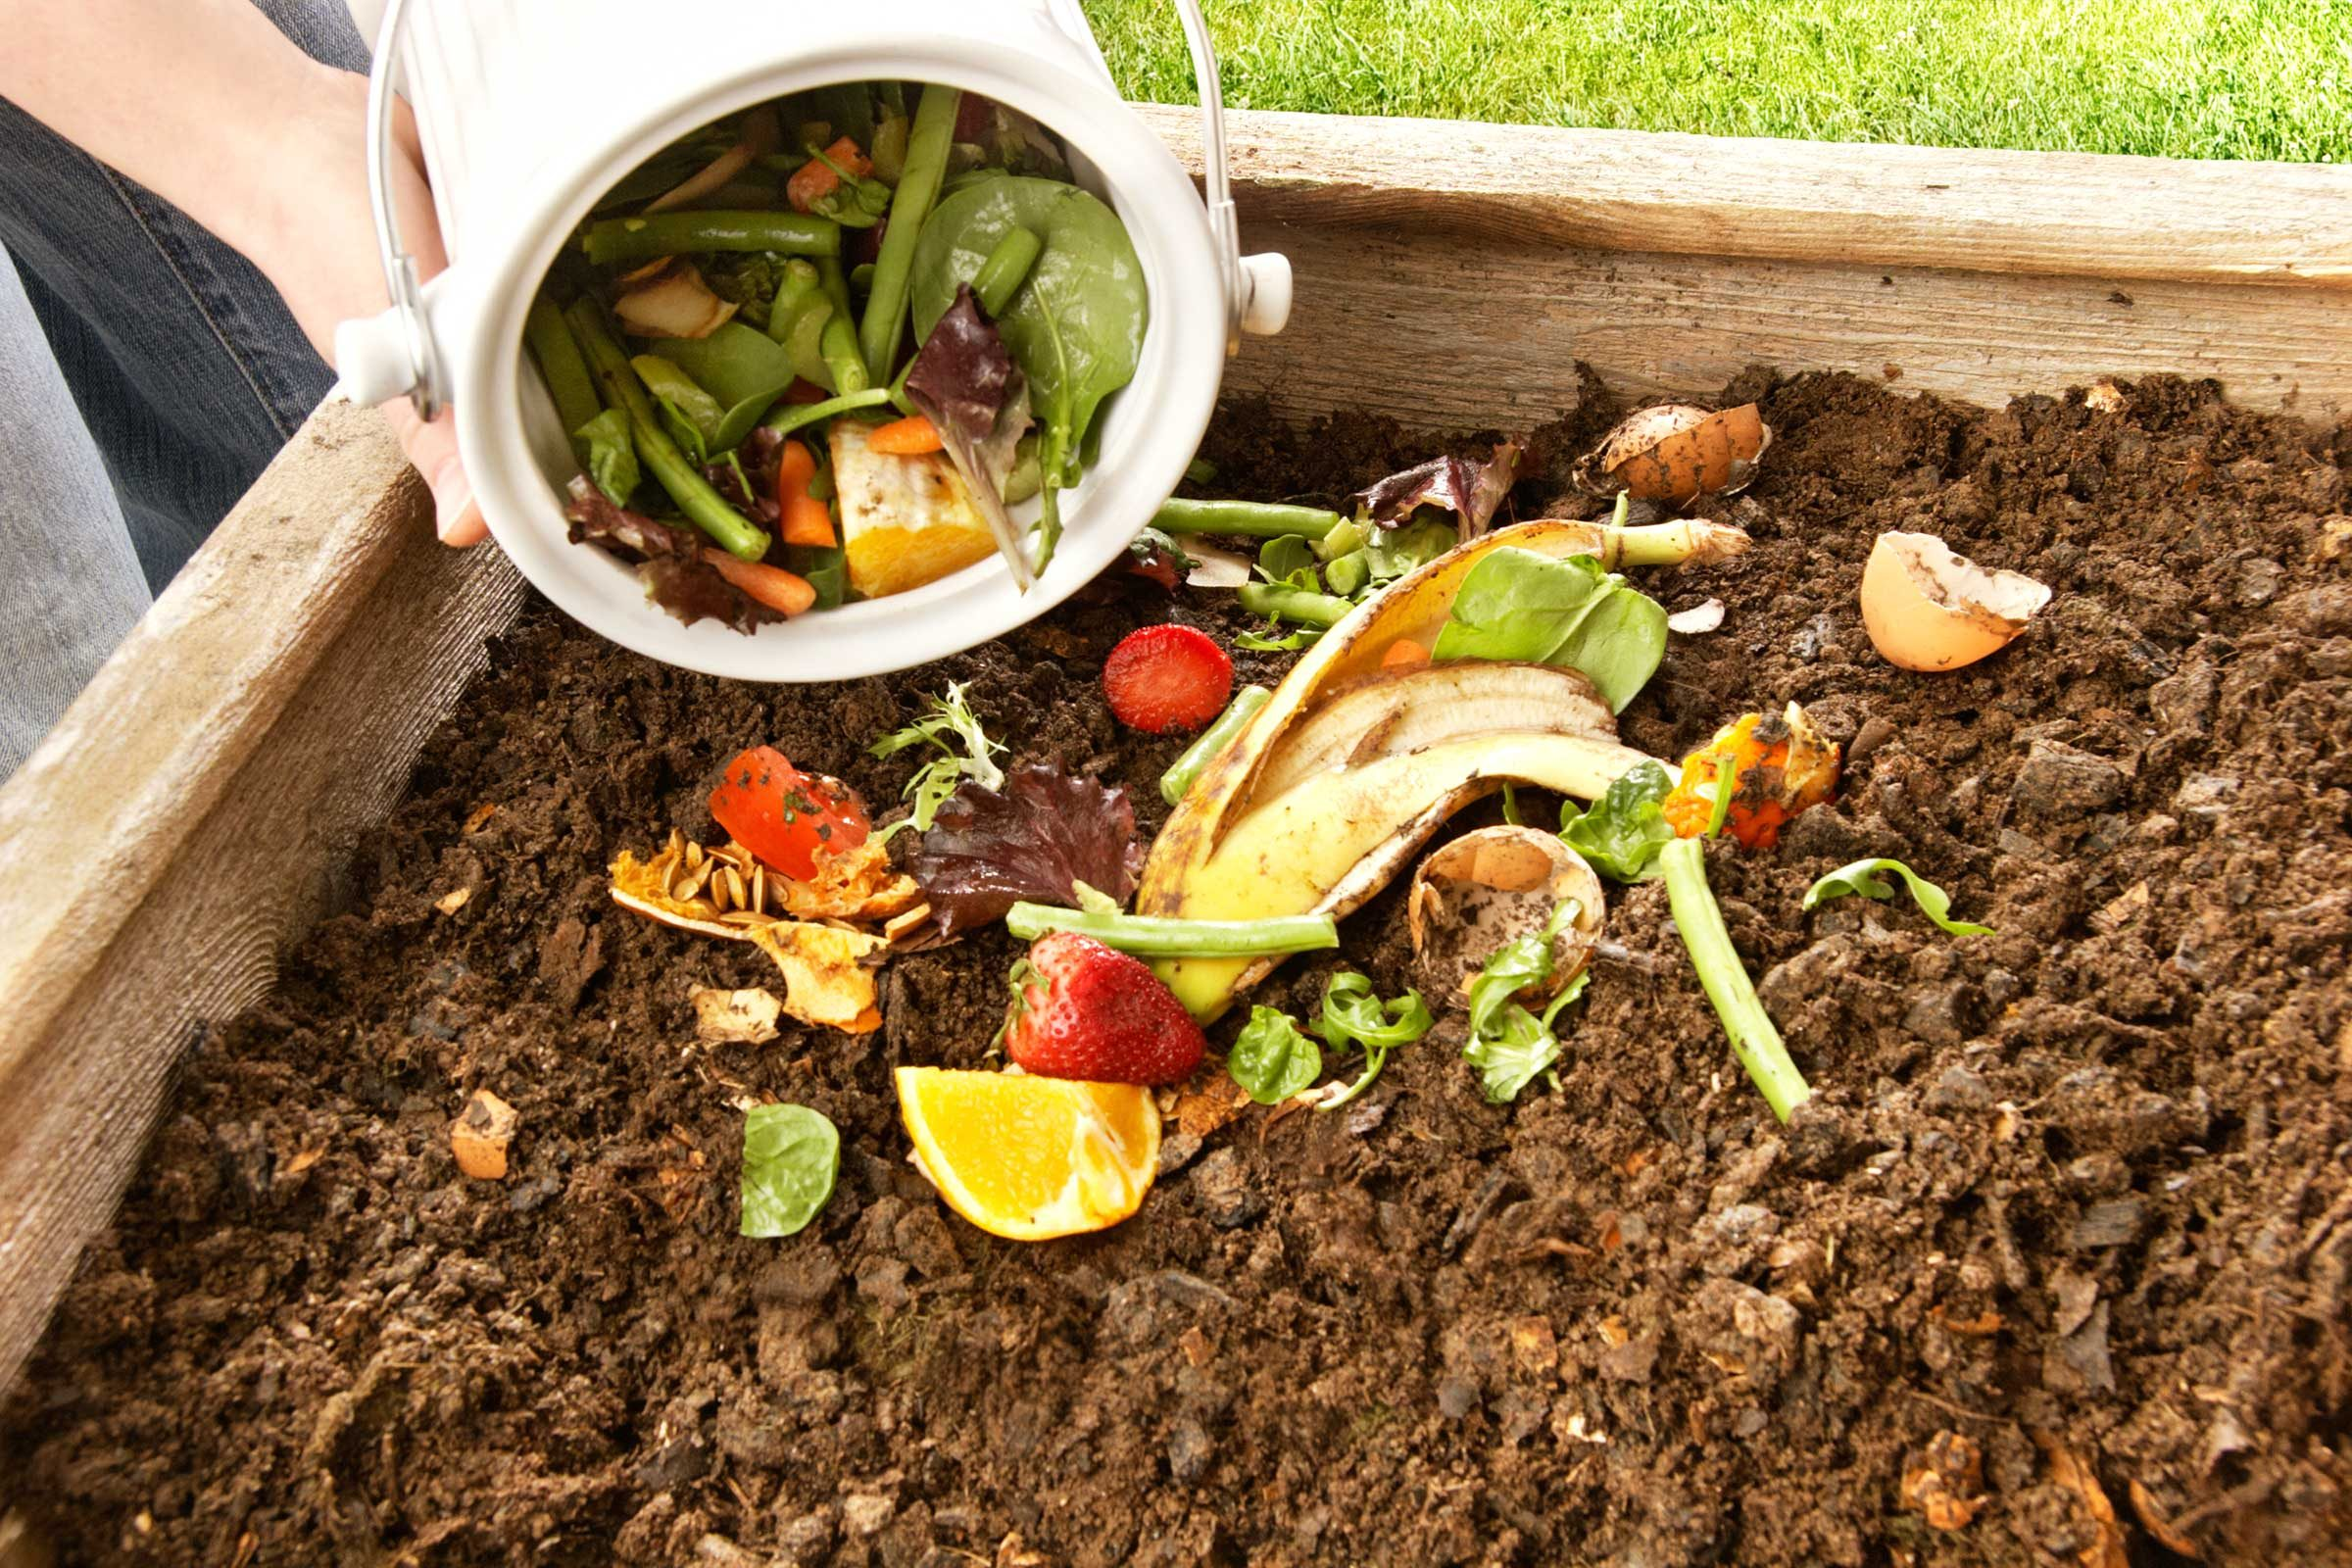 How to make a compost pile in your backyard - Build Your Own Compost Bin